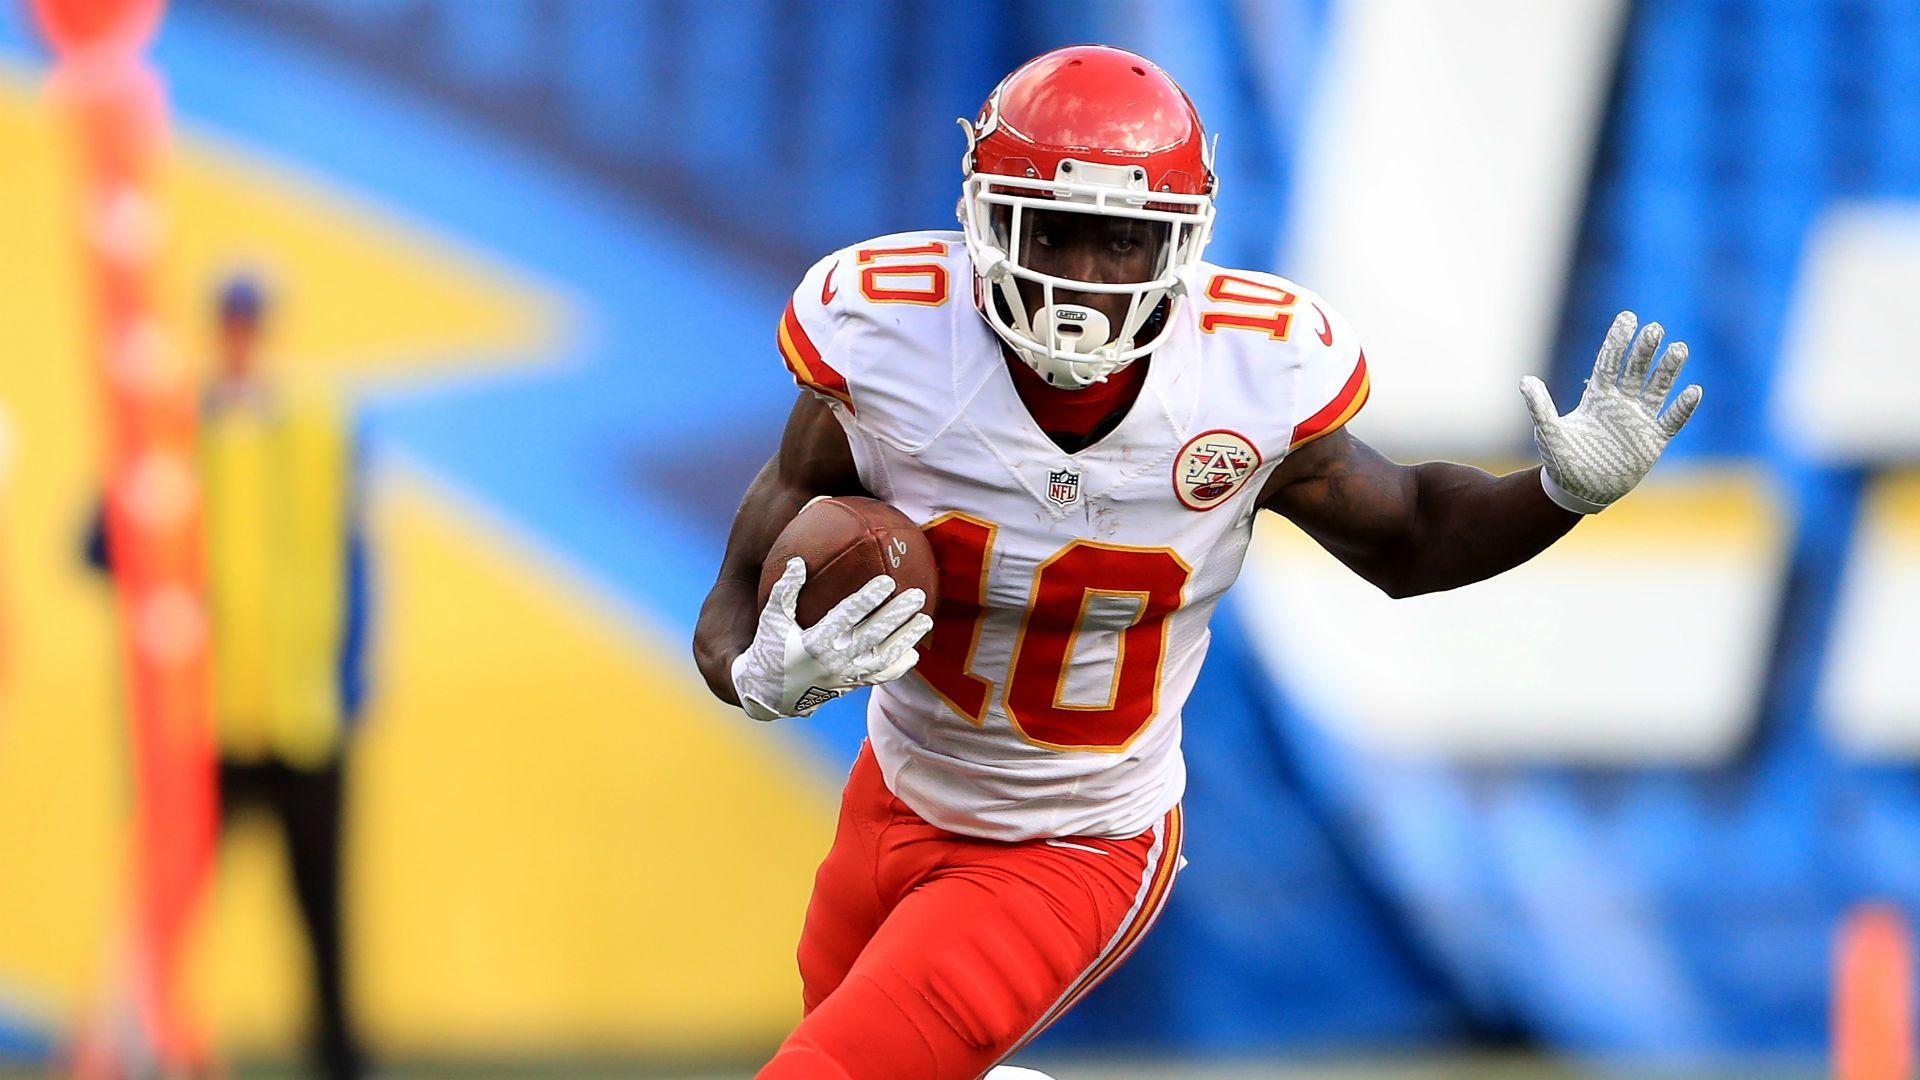 Tyreek Hill's latest punt return cost Vikings' defensive back $100